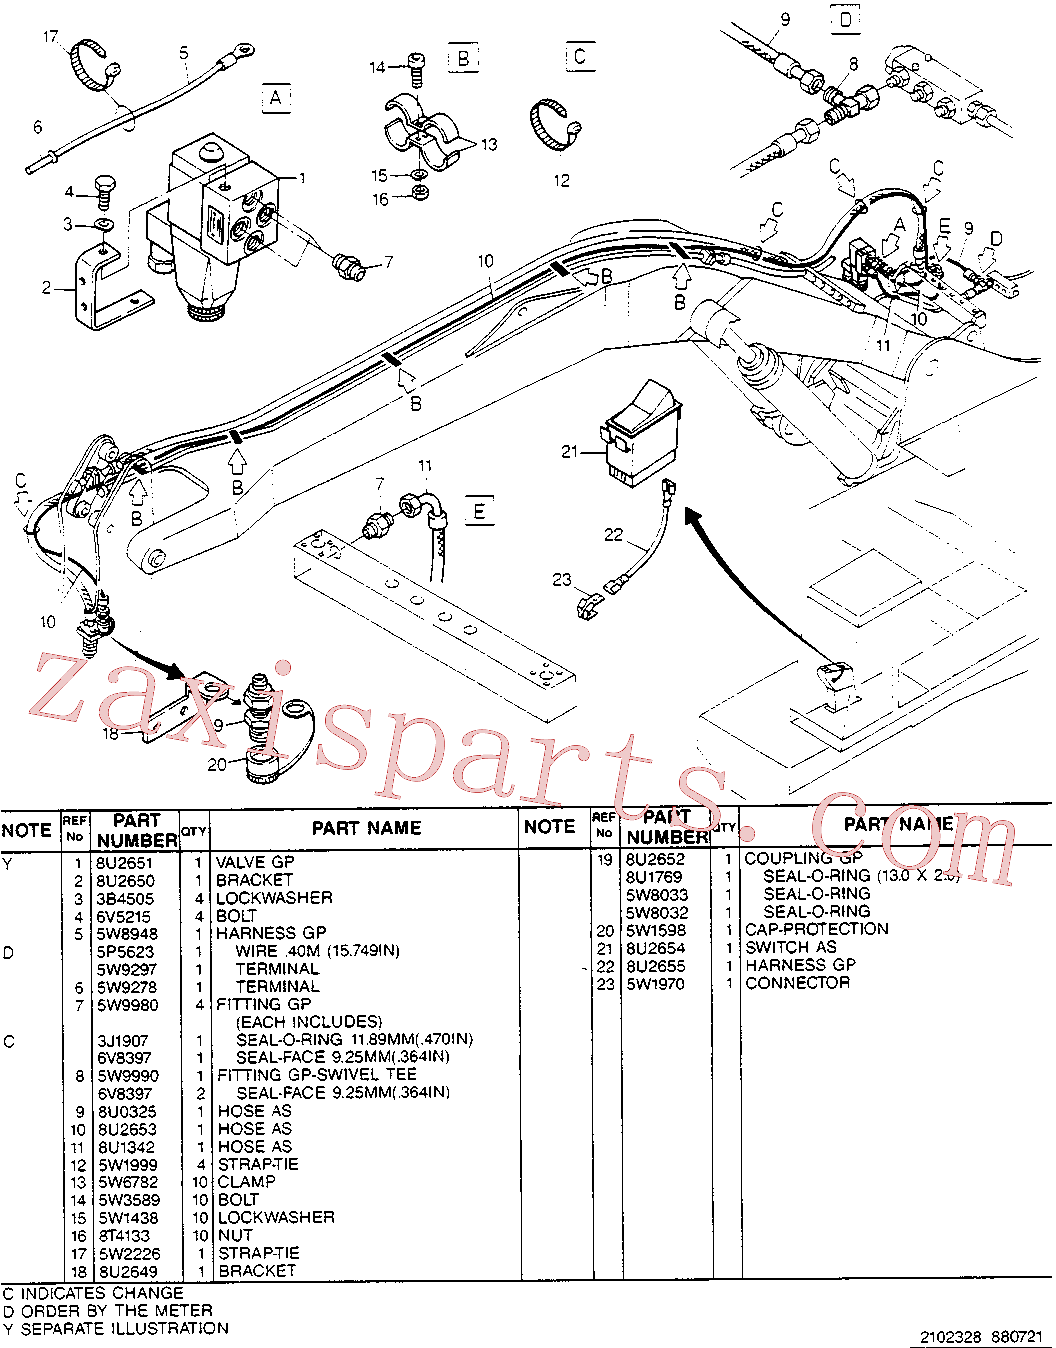 CAT 5W-6782 for 214B FT Excavator(EXC) hydraulic system 8U-2648 Assembly